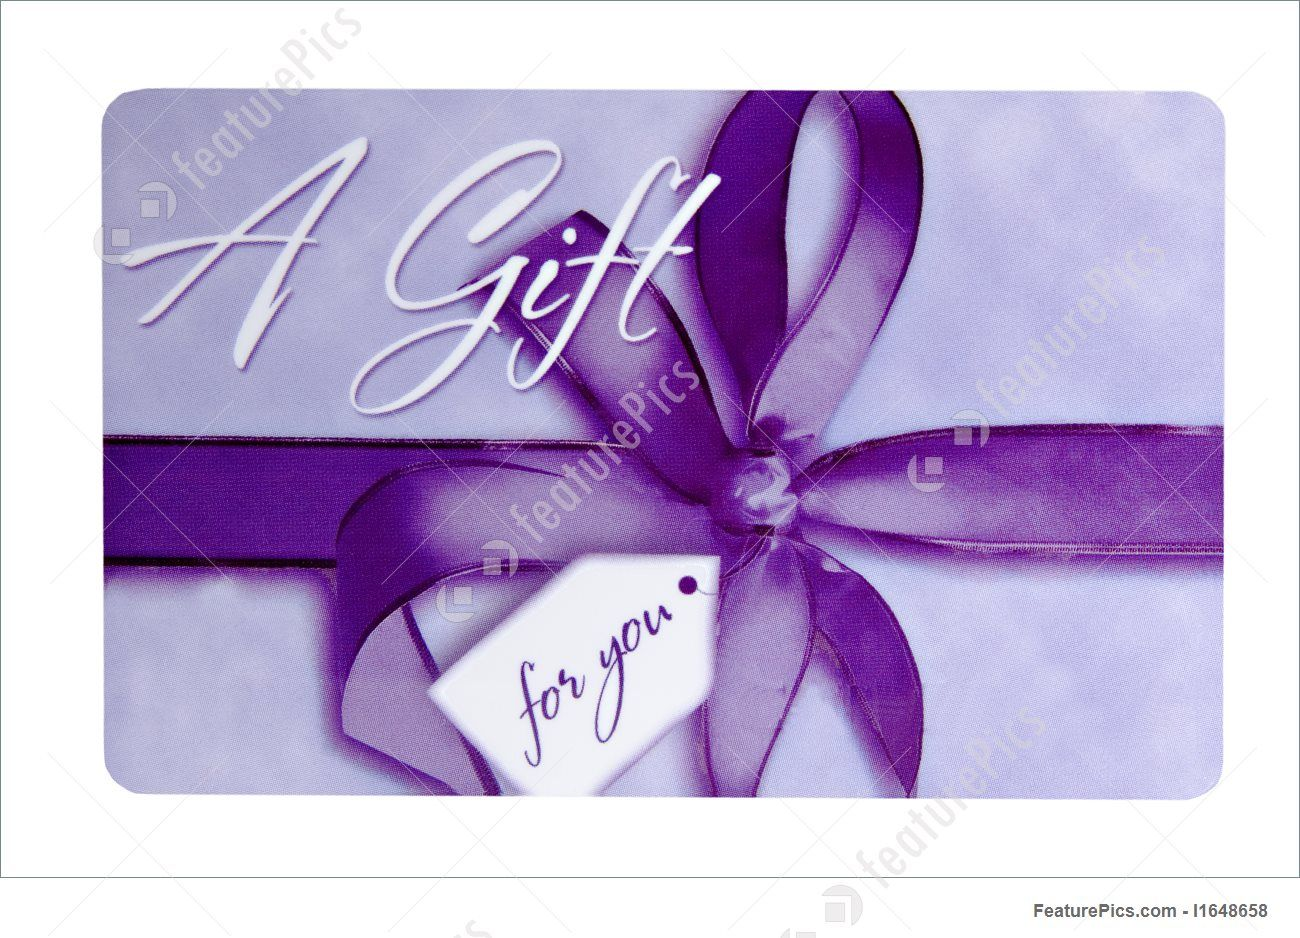 get free gift card online photo - 1